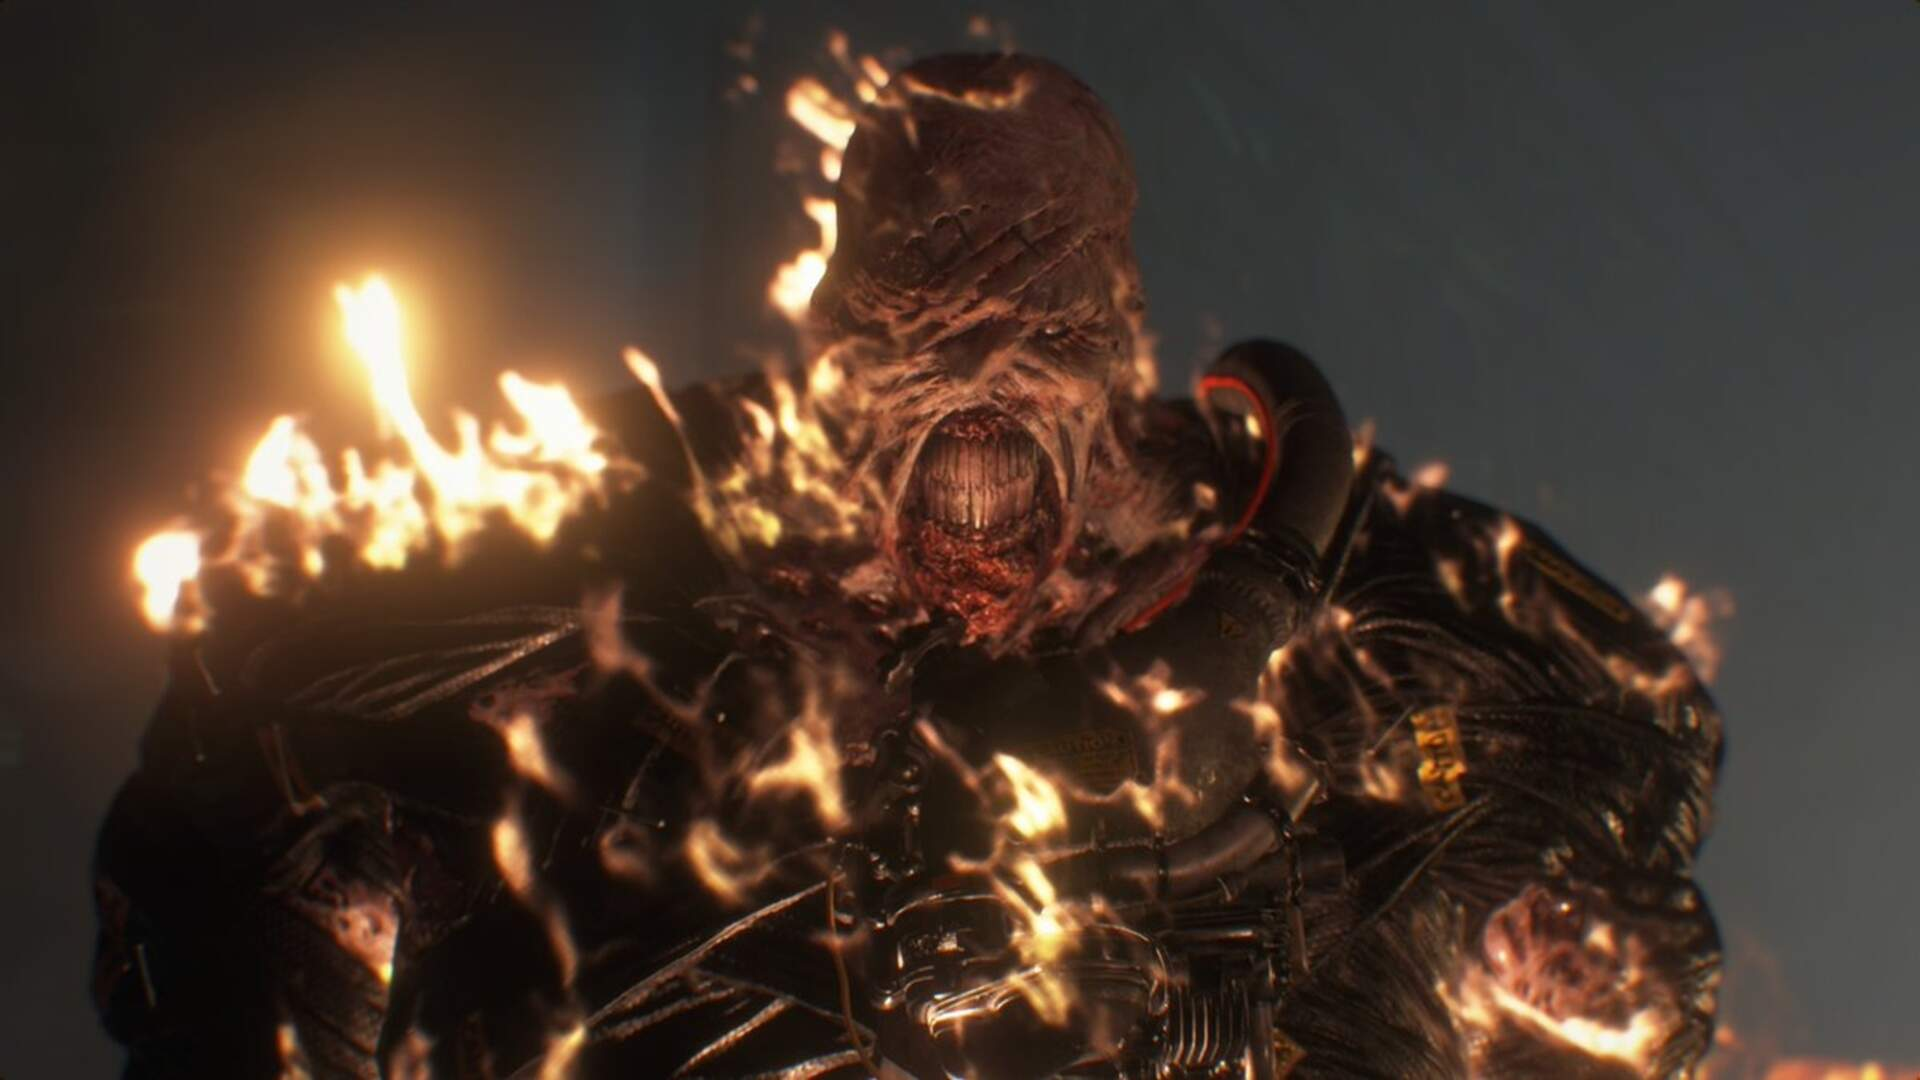 Nemesis Has Zero Chill in New Resident Evil 3 Remake Trailer